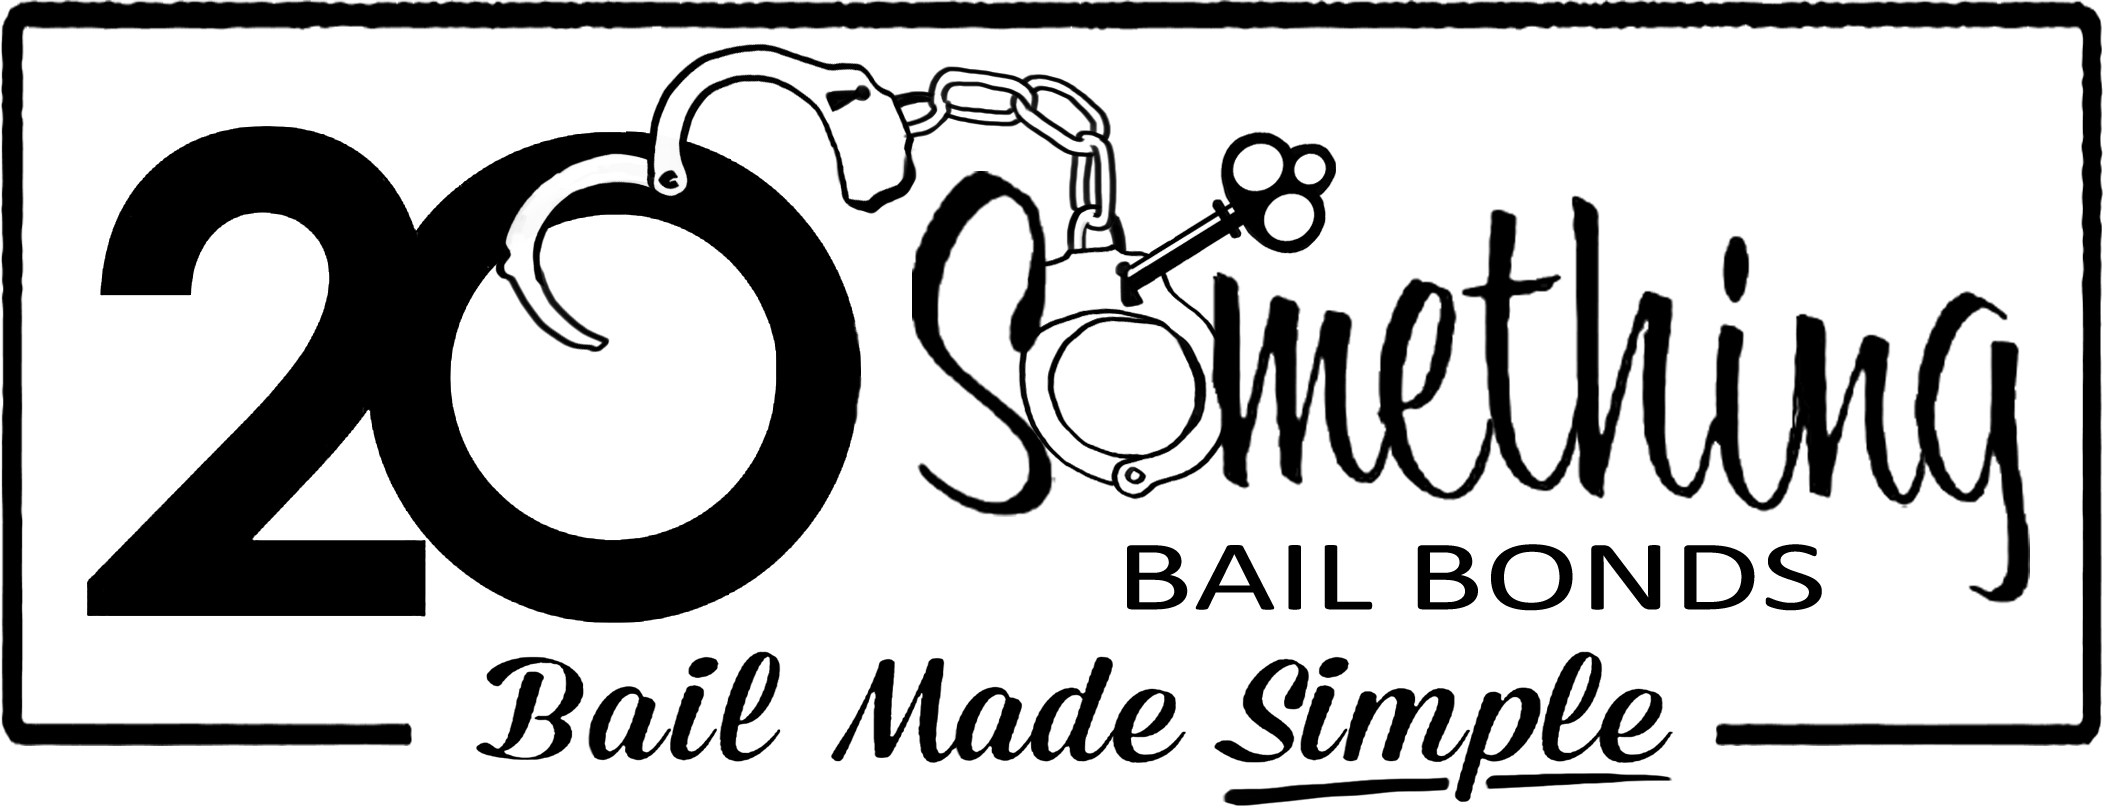 Bail Made Simple | 20 Something Bail Bonds